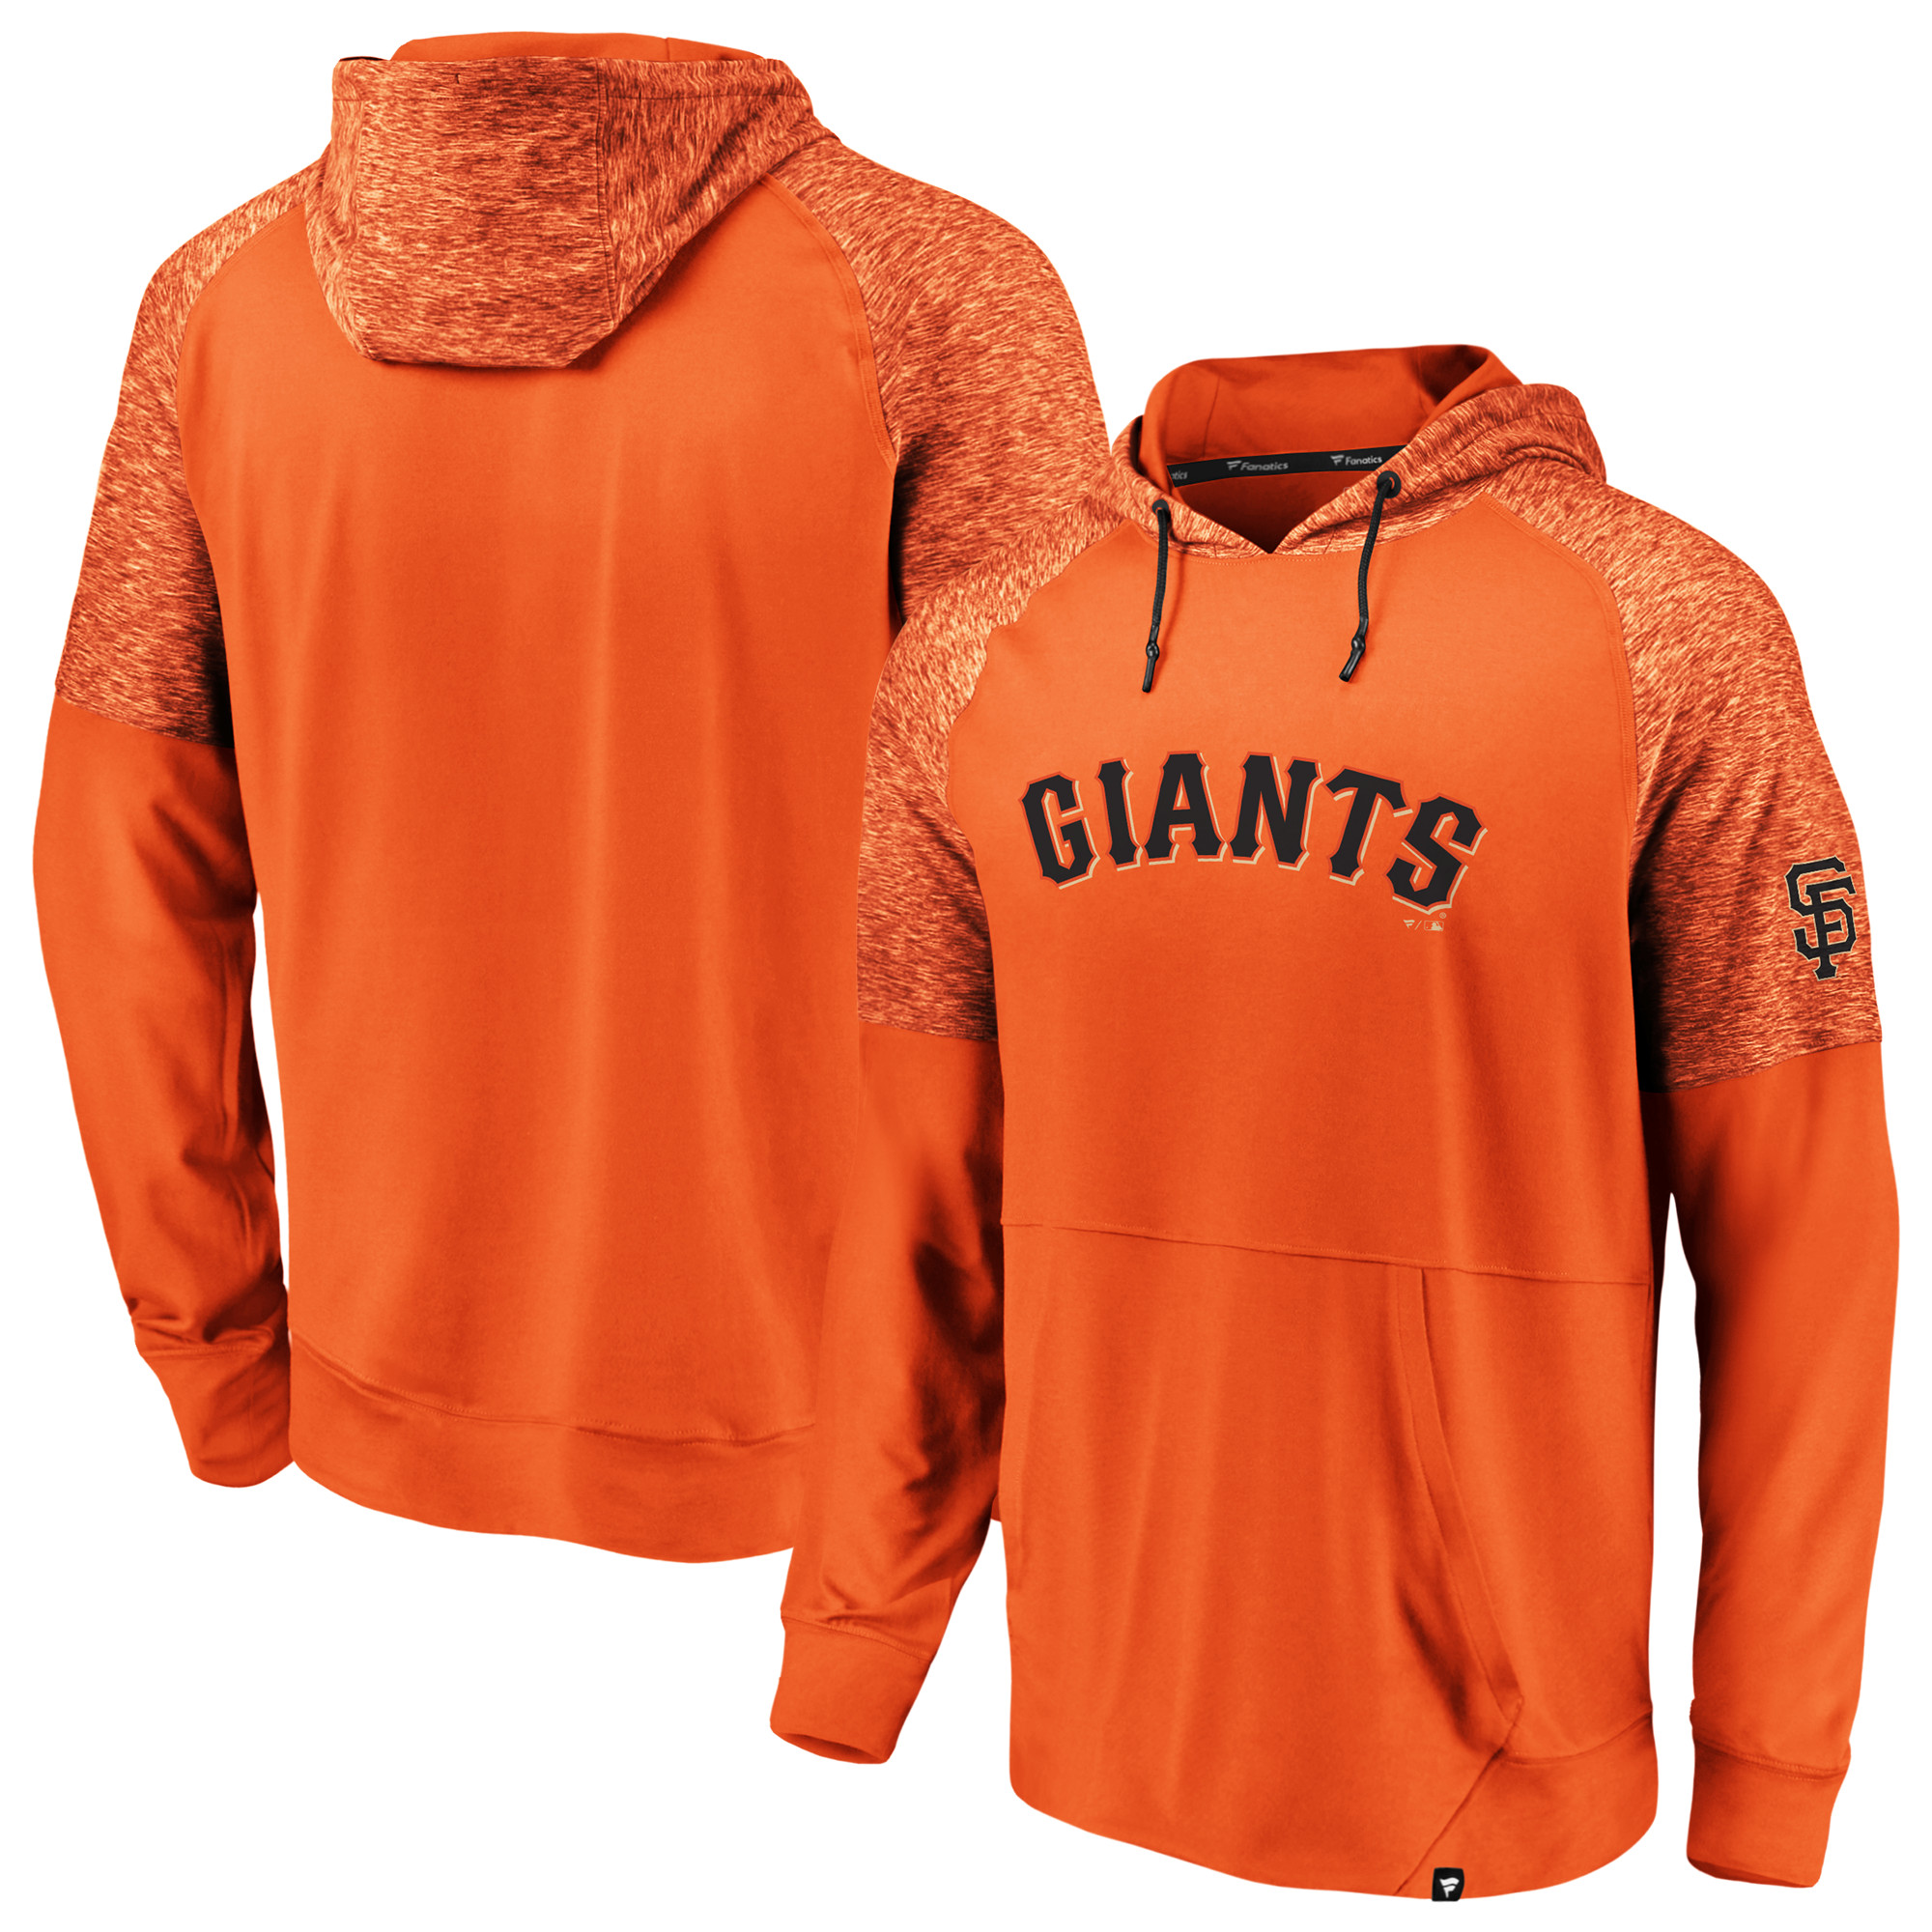 San Francisco Giants Fanatics Branded Made to Move Poly Fleece Pullover Hoodie - Orange